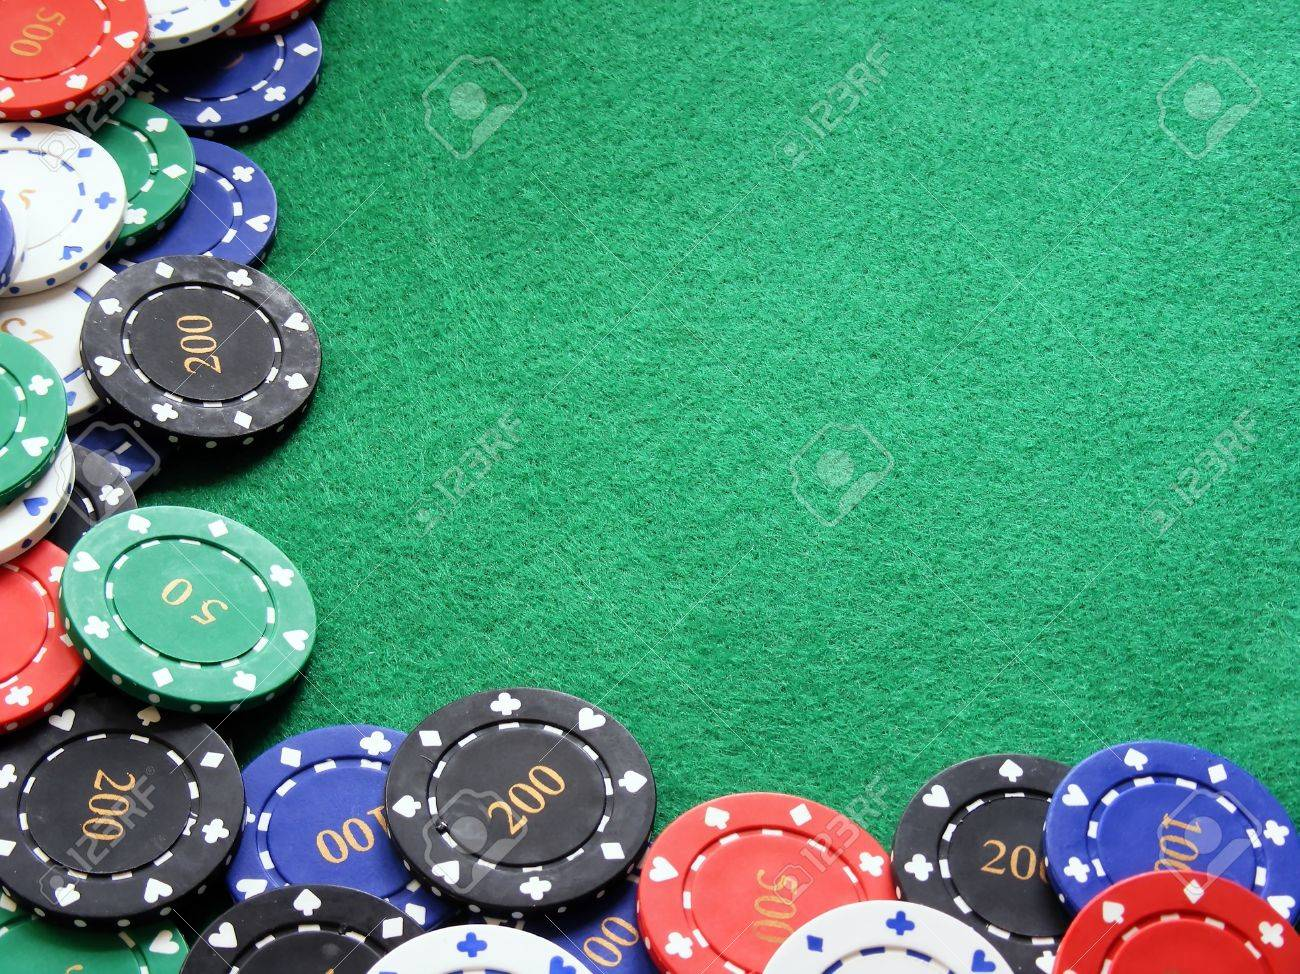 A Selection Of Diffirent Value Poker Chips On A Green Felt Poker